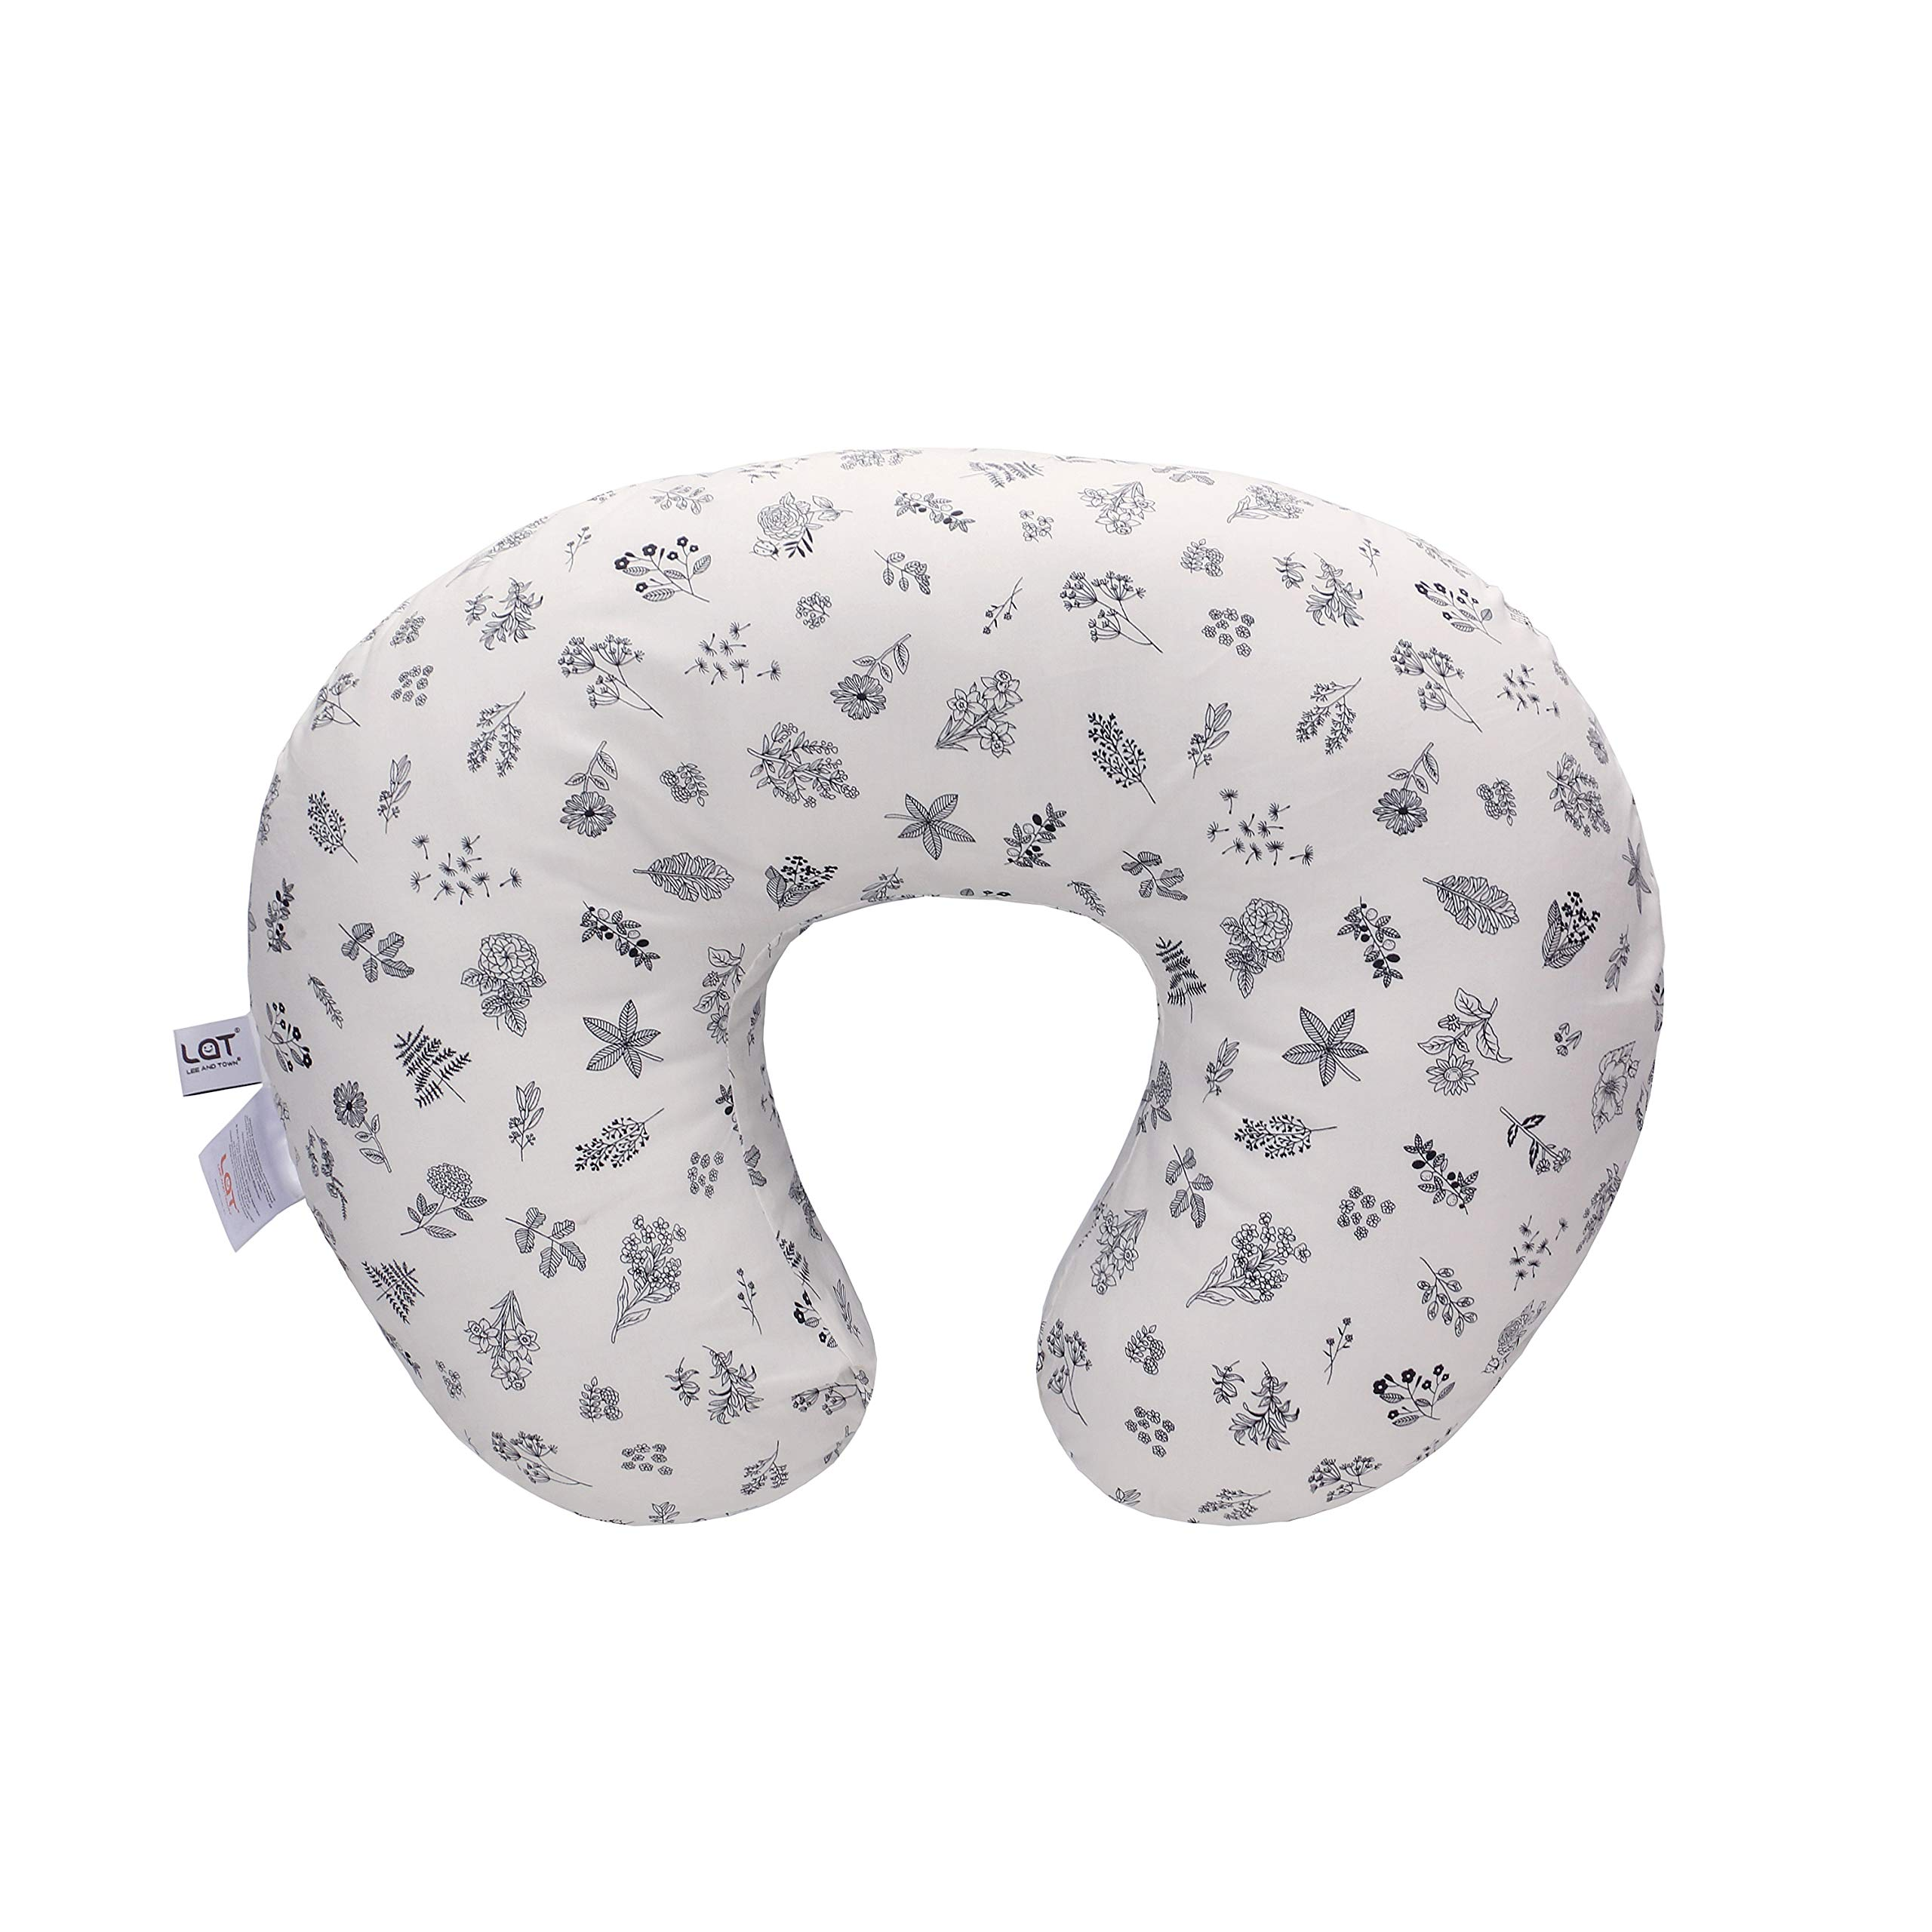 LAT Nursing Pillow Cover,100% Natural Cotton Breastfeeding Pillow Slipcover,Extra Soft and Snug on Baby Nursing Pillow (Plant) by LAT LEE AND TOWN